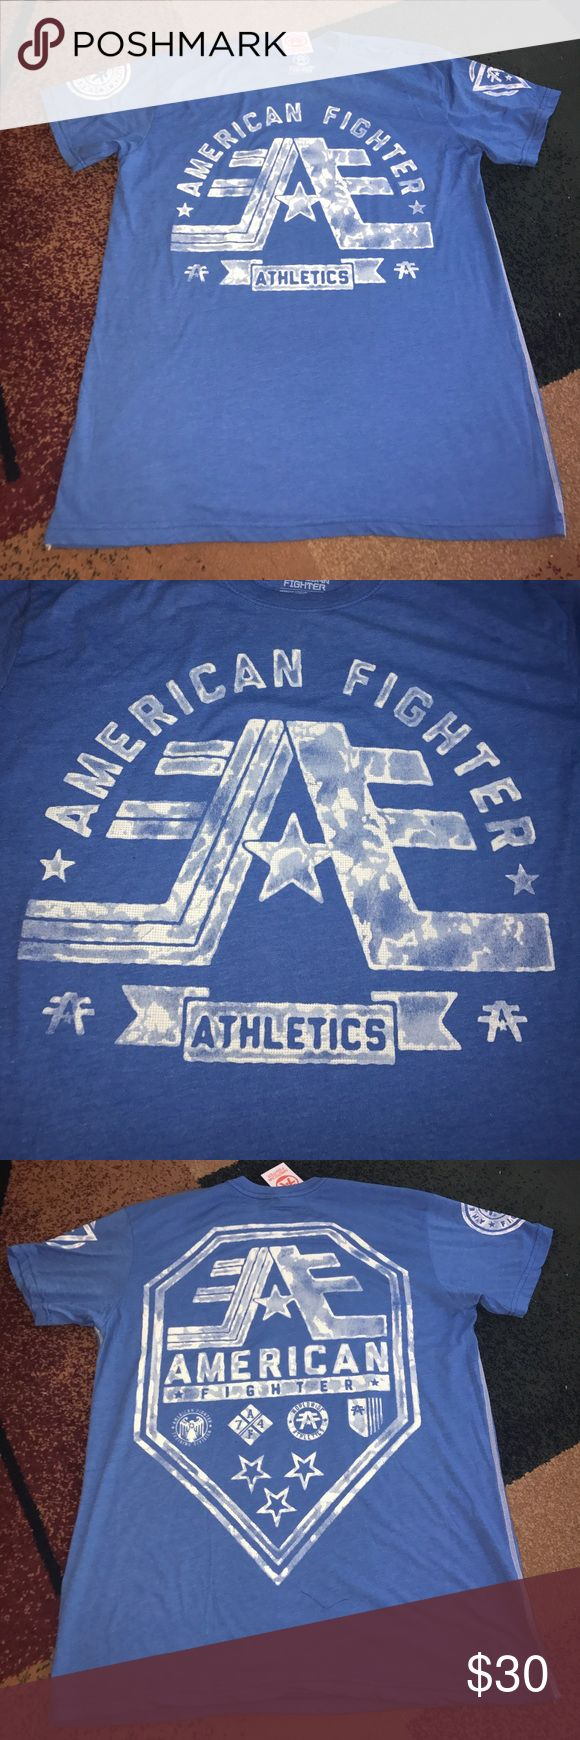 Mens American Fighter shirt 2XL NWT New with tag. 50% cotton 50% polyester. Please check my other listings. Thank you for looking and have a great day! American Fighter Shirts Tees - Short Sleeve